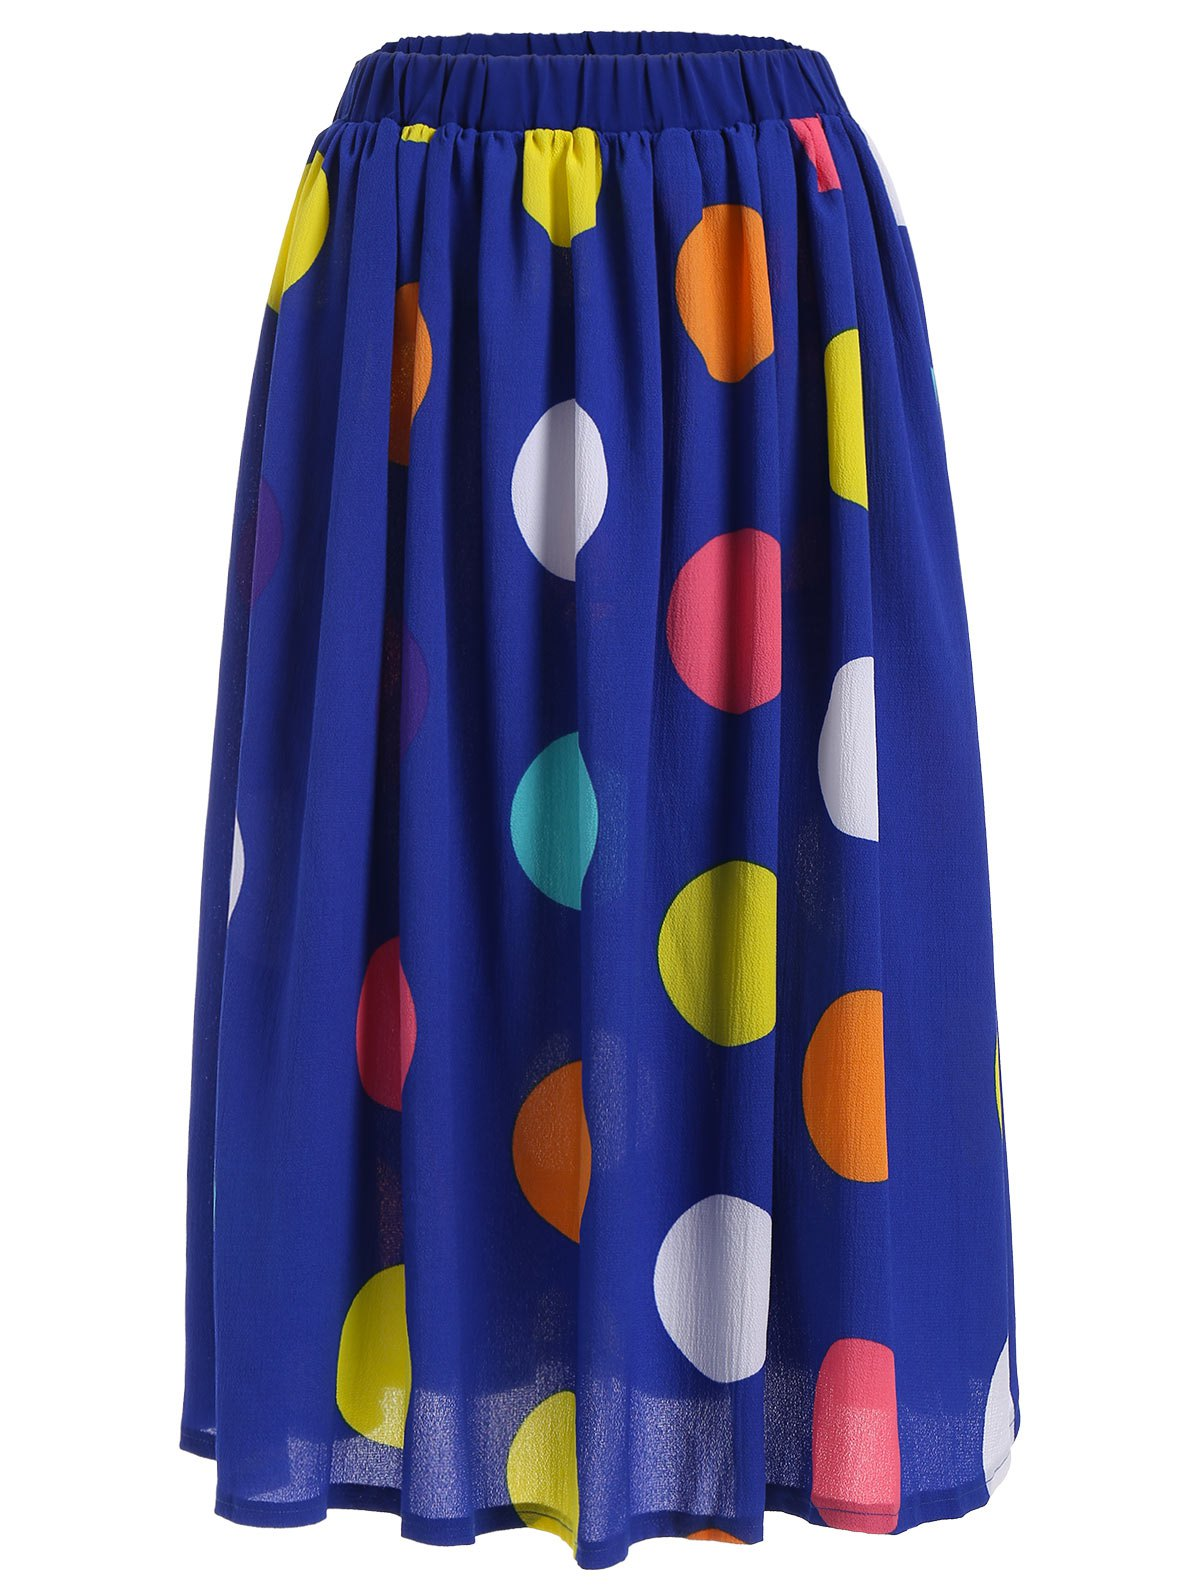 Big Polka Dot Print Elastic Waisted Midi Skirt - BLUE L